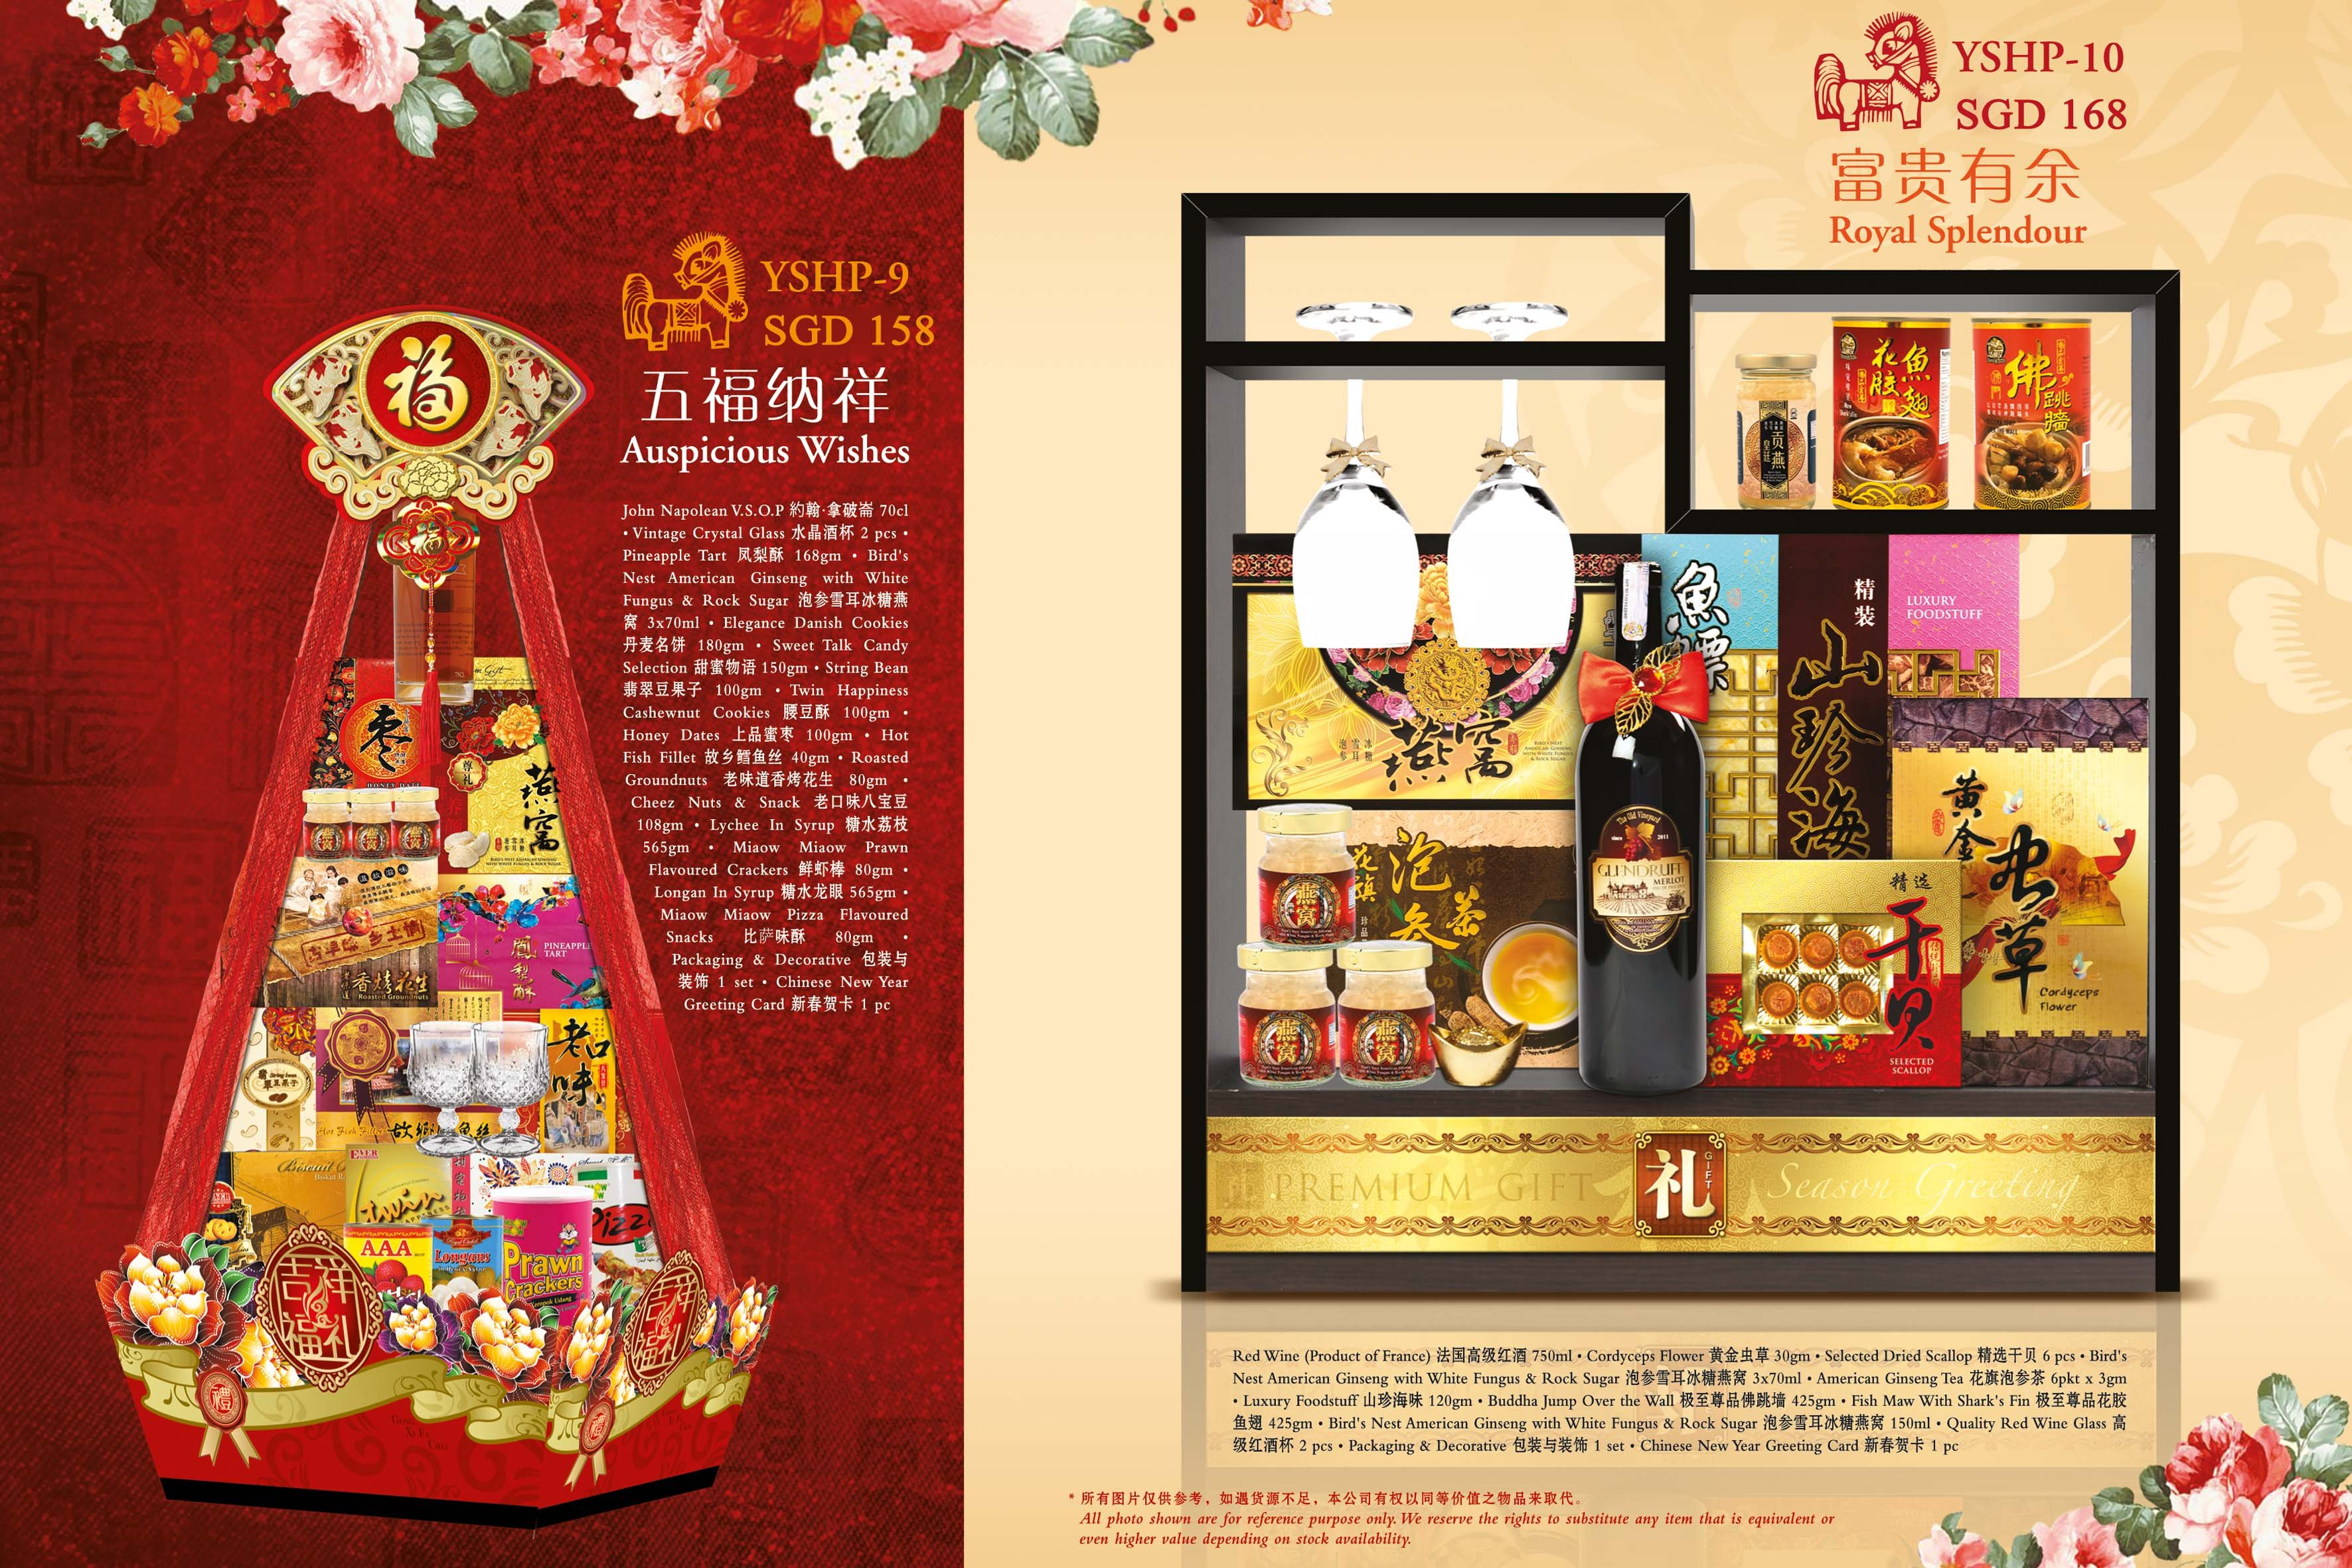 Enchanting Wall Decorations For Chinese New Year Crest - The Wall ...